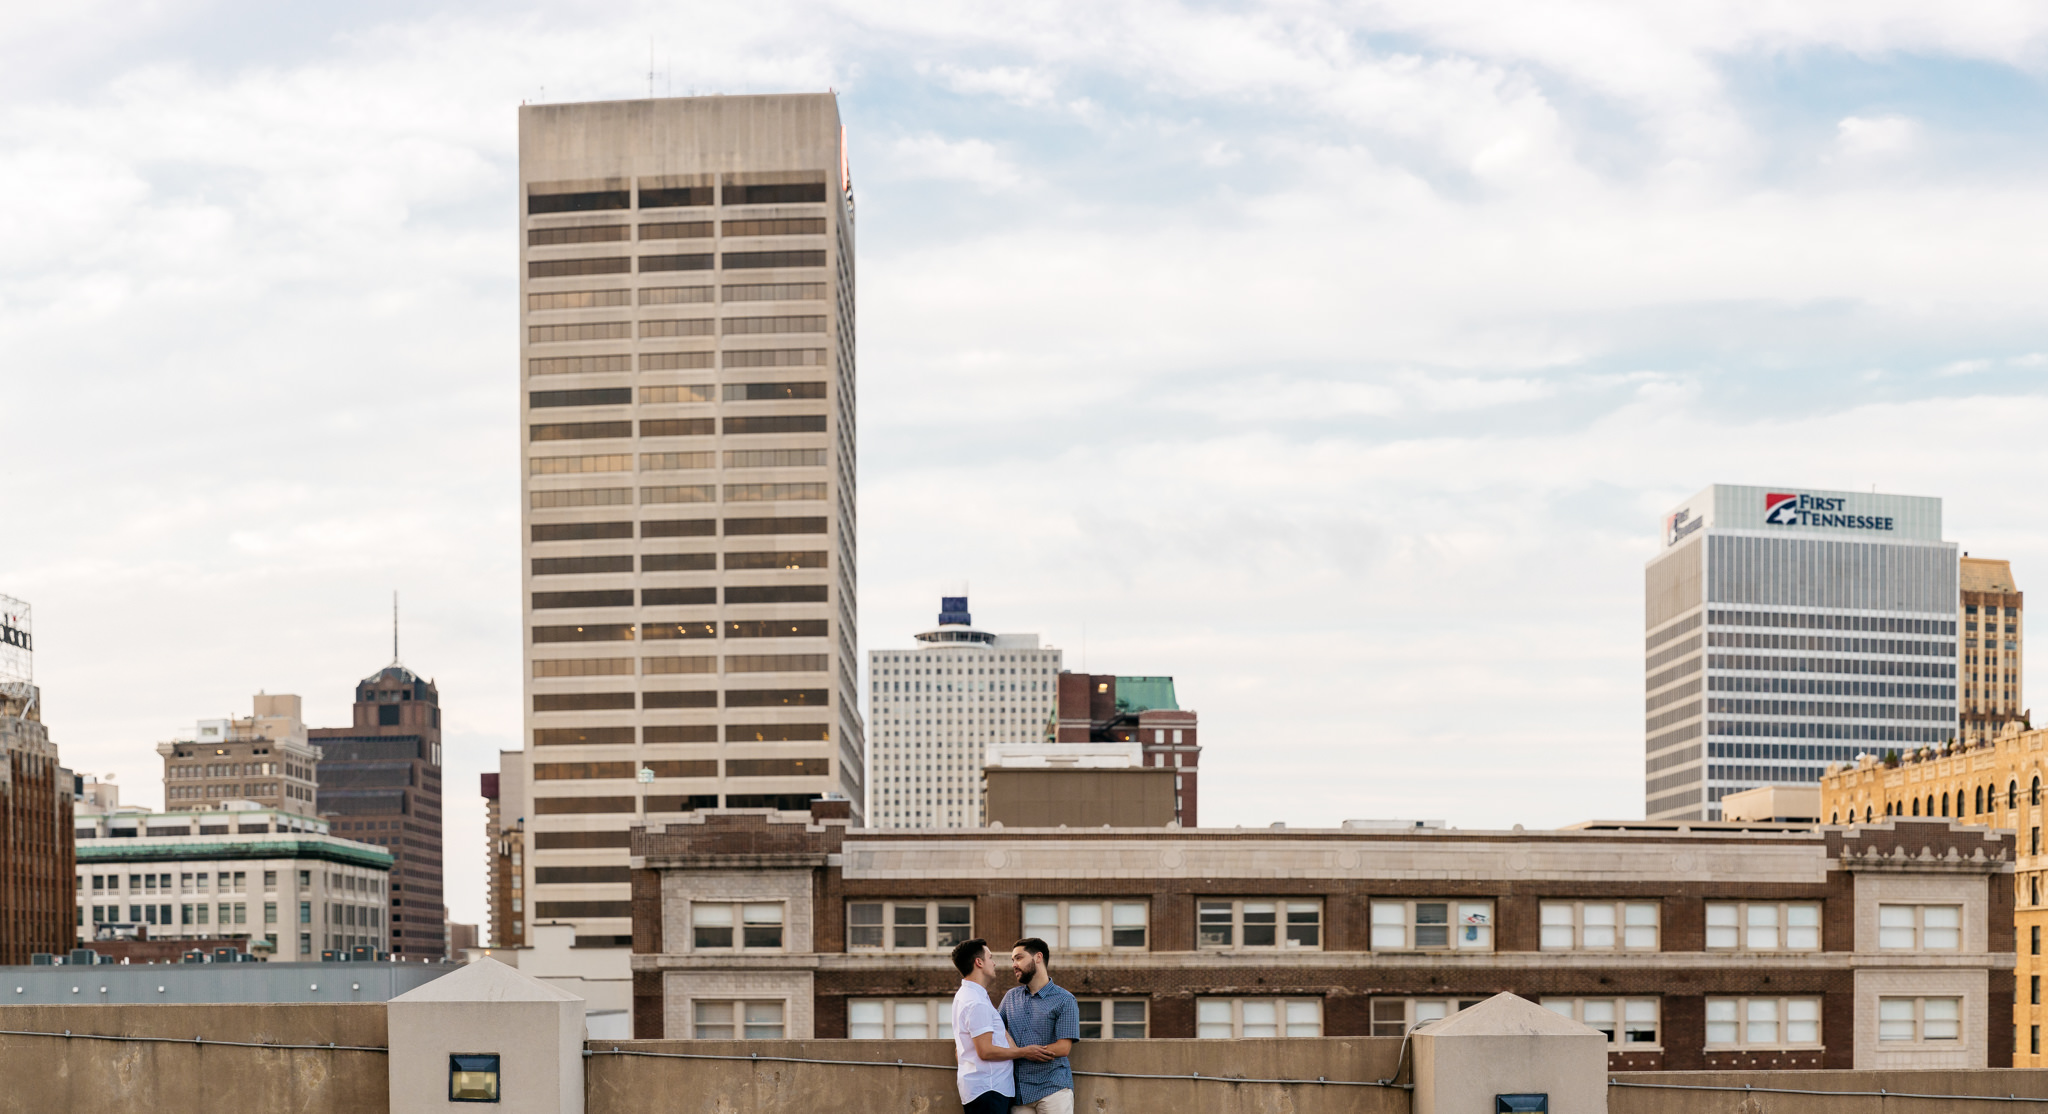 peabody-engagement-pictures-downtown-memphis-thewarmtharoundyou-shelby-alex-59.jpg